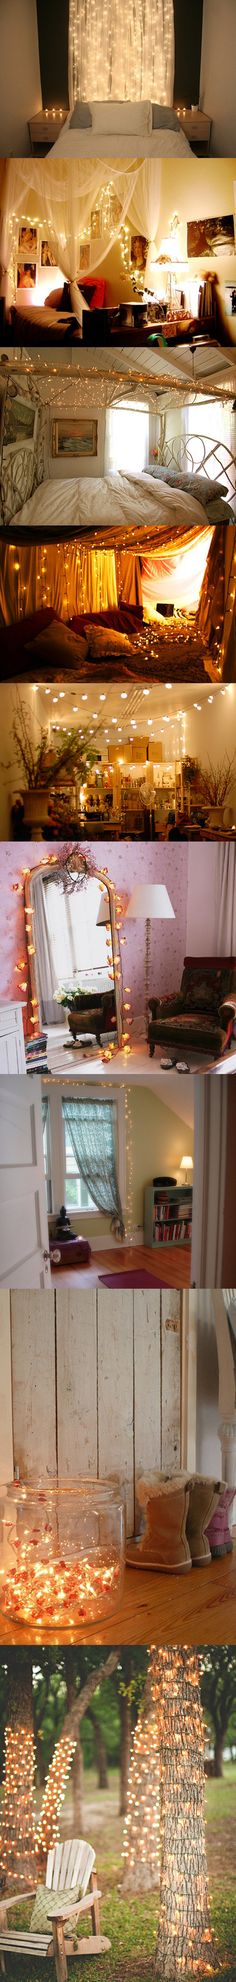 Love the lights on the mirror!